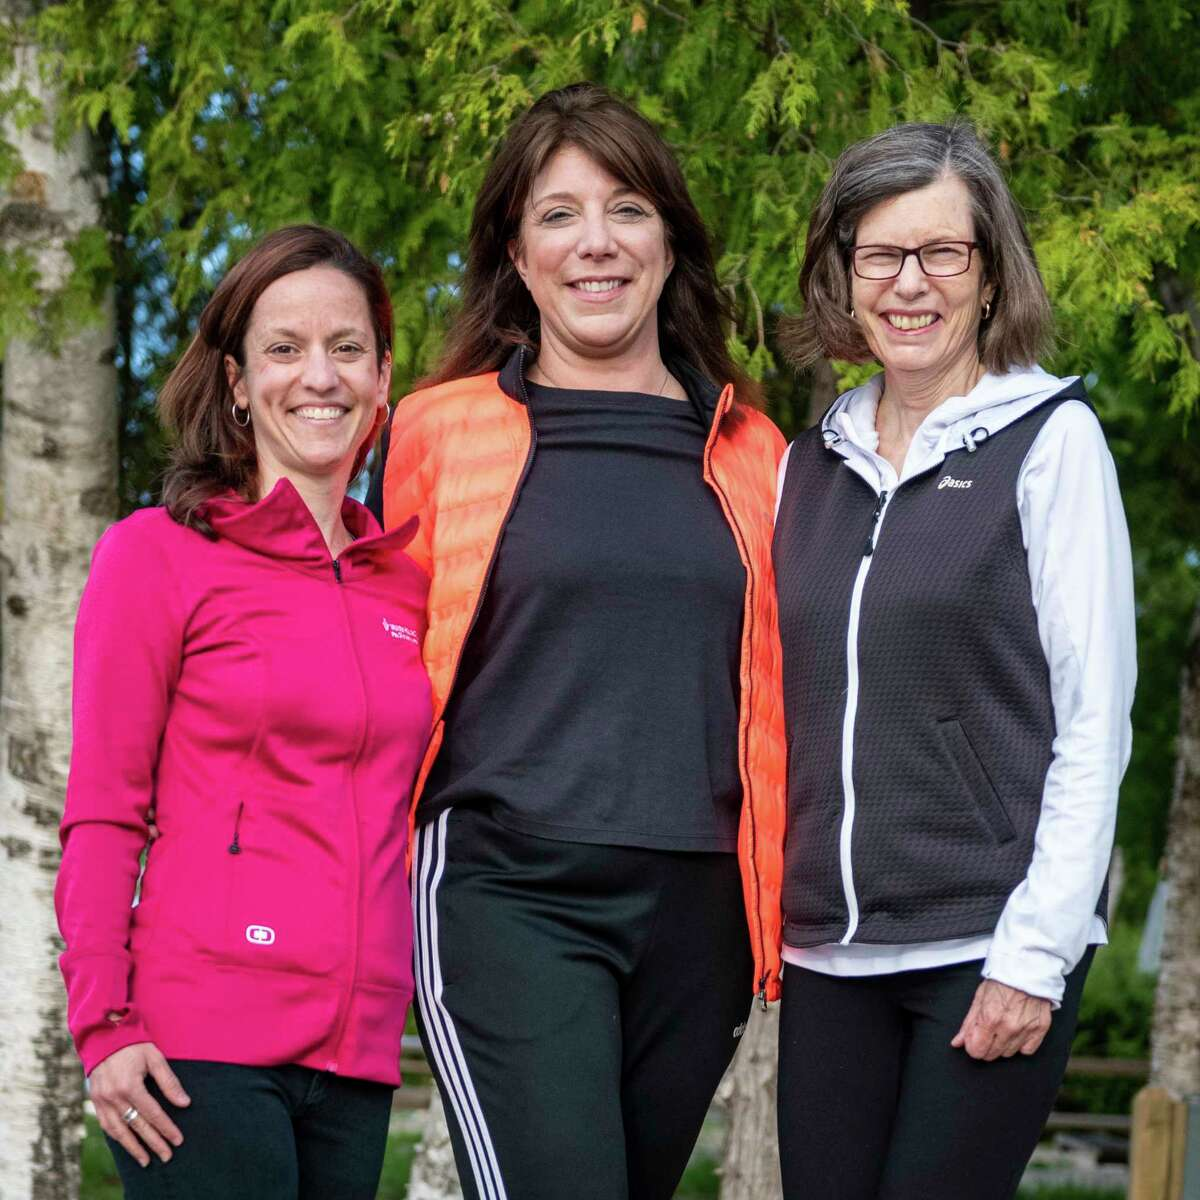 Adrienne Stephen Jones (left), Nancy Smith (middle)and Michelle Russell (right) will be participating in the Ironman event in September to raise money for Paul Oliver. (Courtesy Photo)